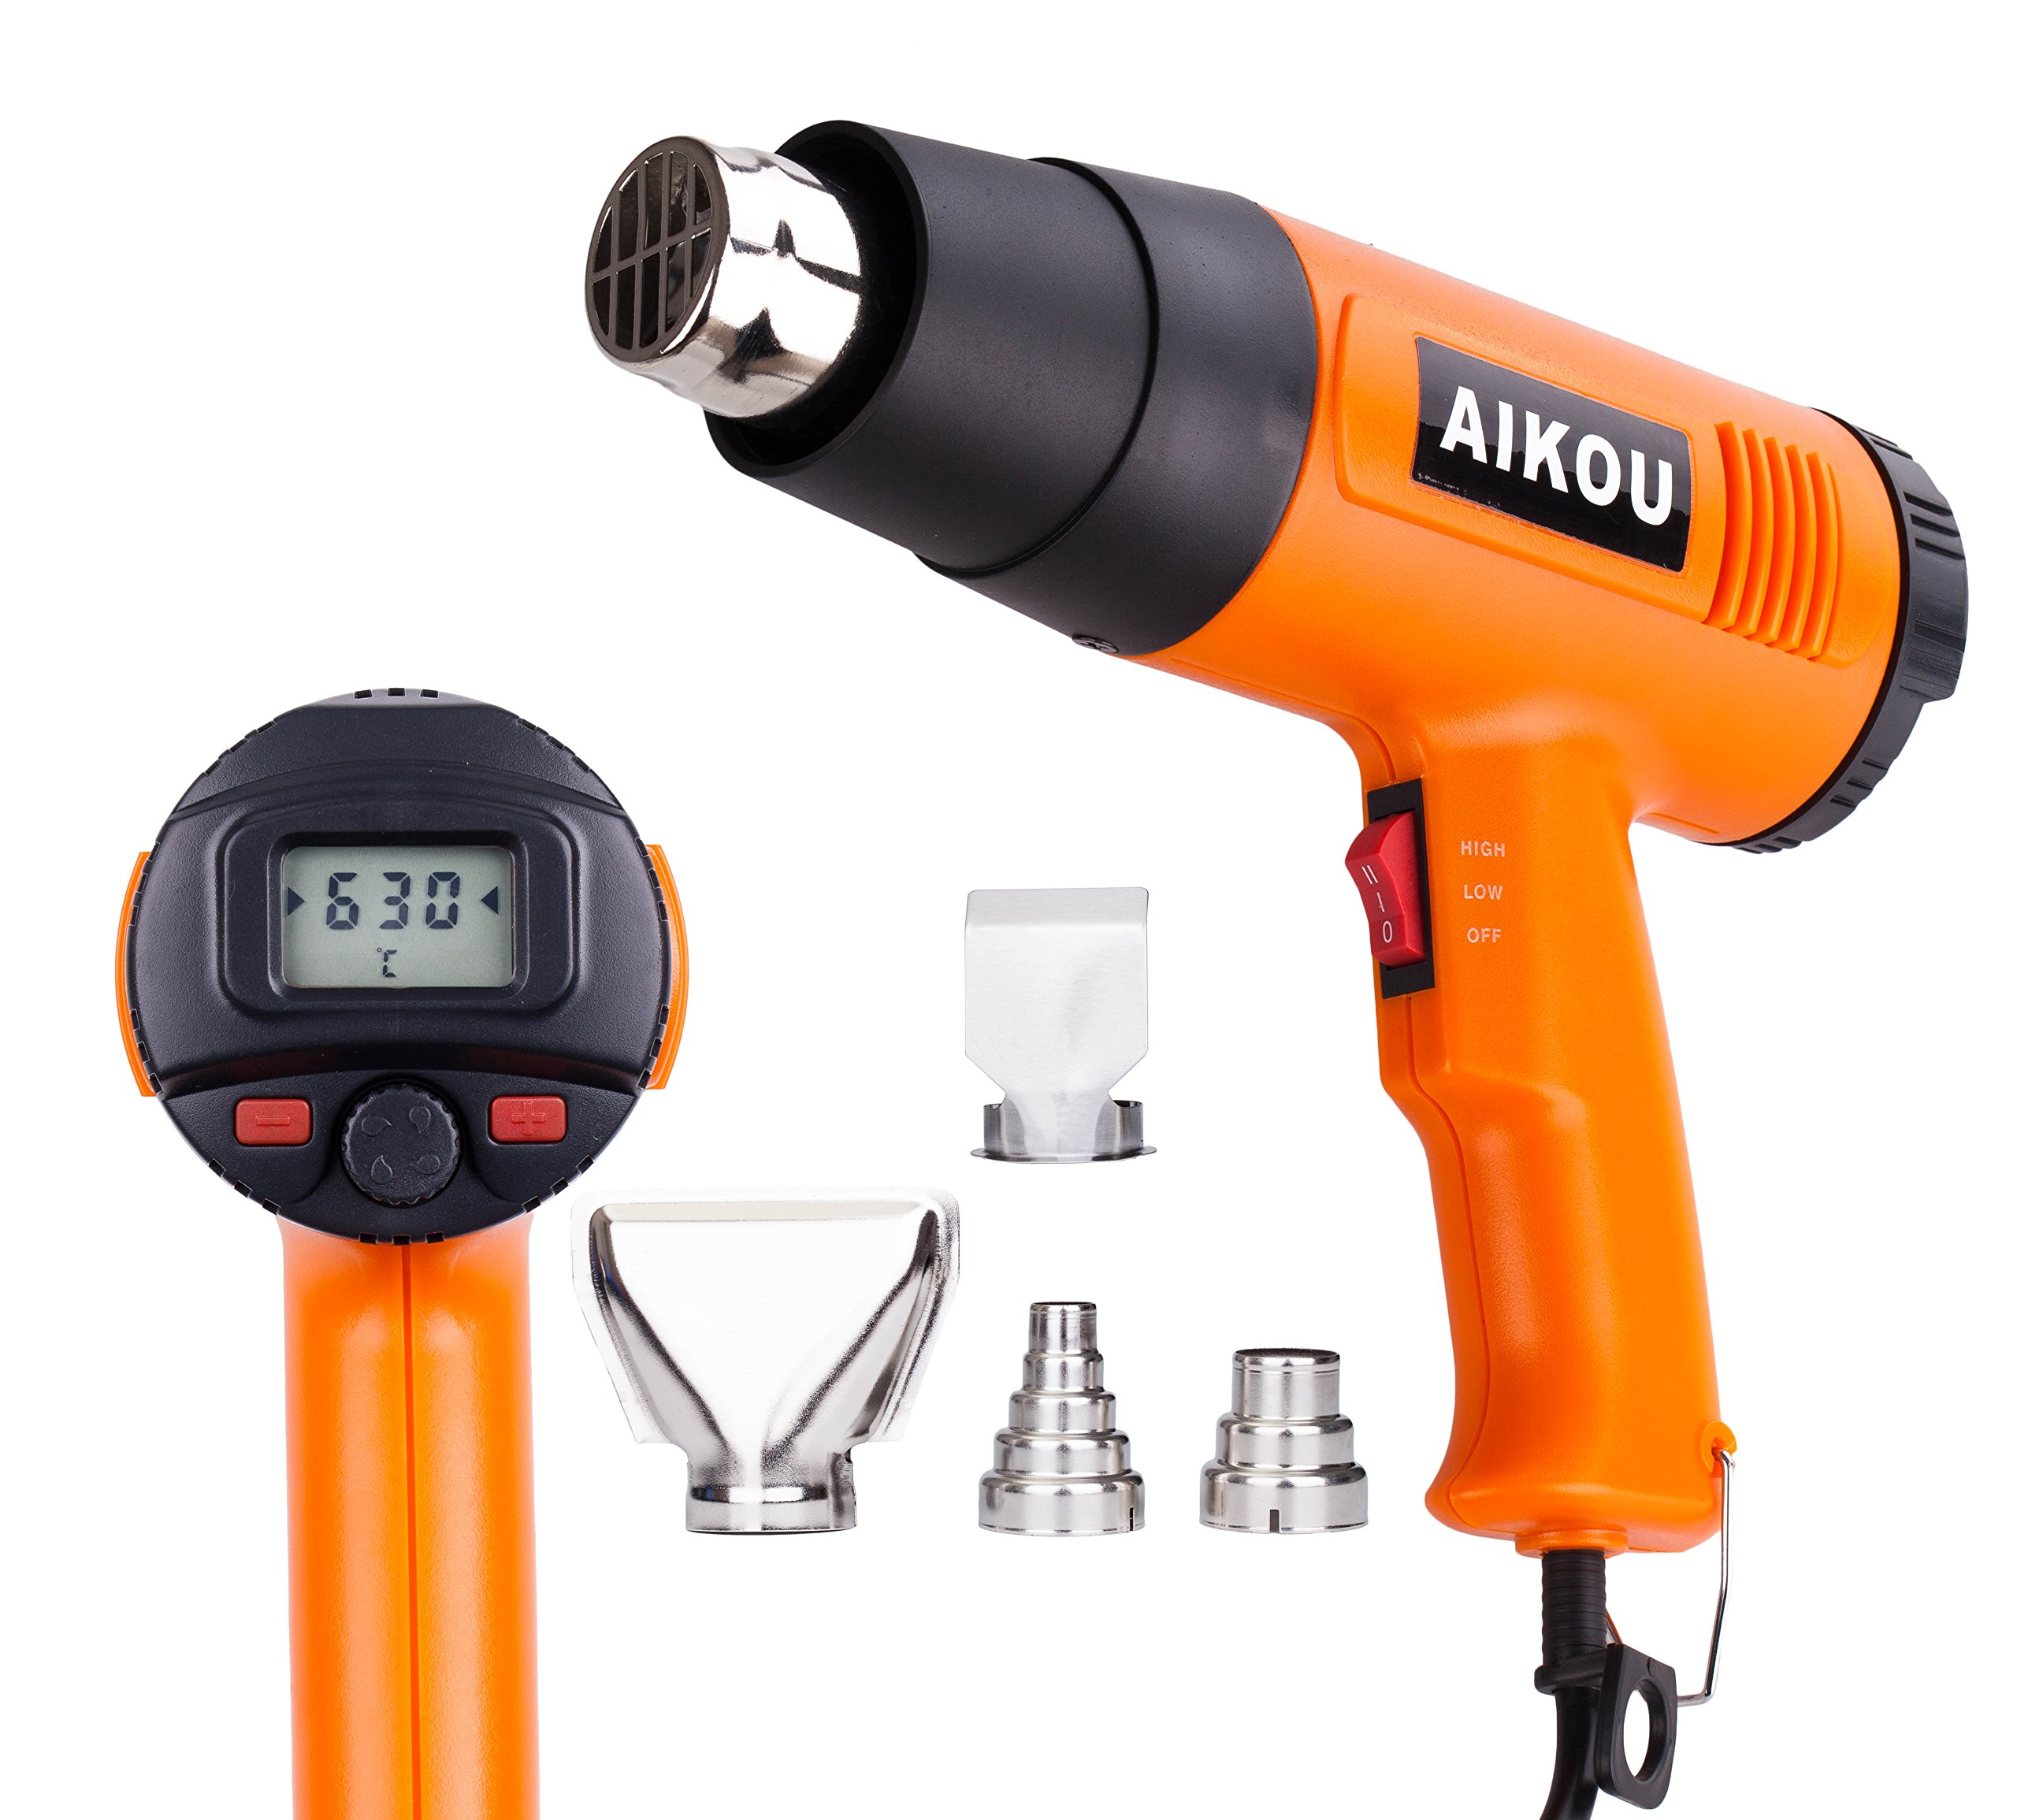 AIKOU Adjustable Temperature Hot Air Heat Gun with Rear Digital Display Fast Heating Blower Kits (Orange)